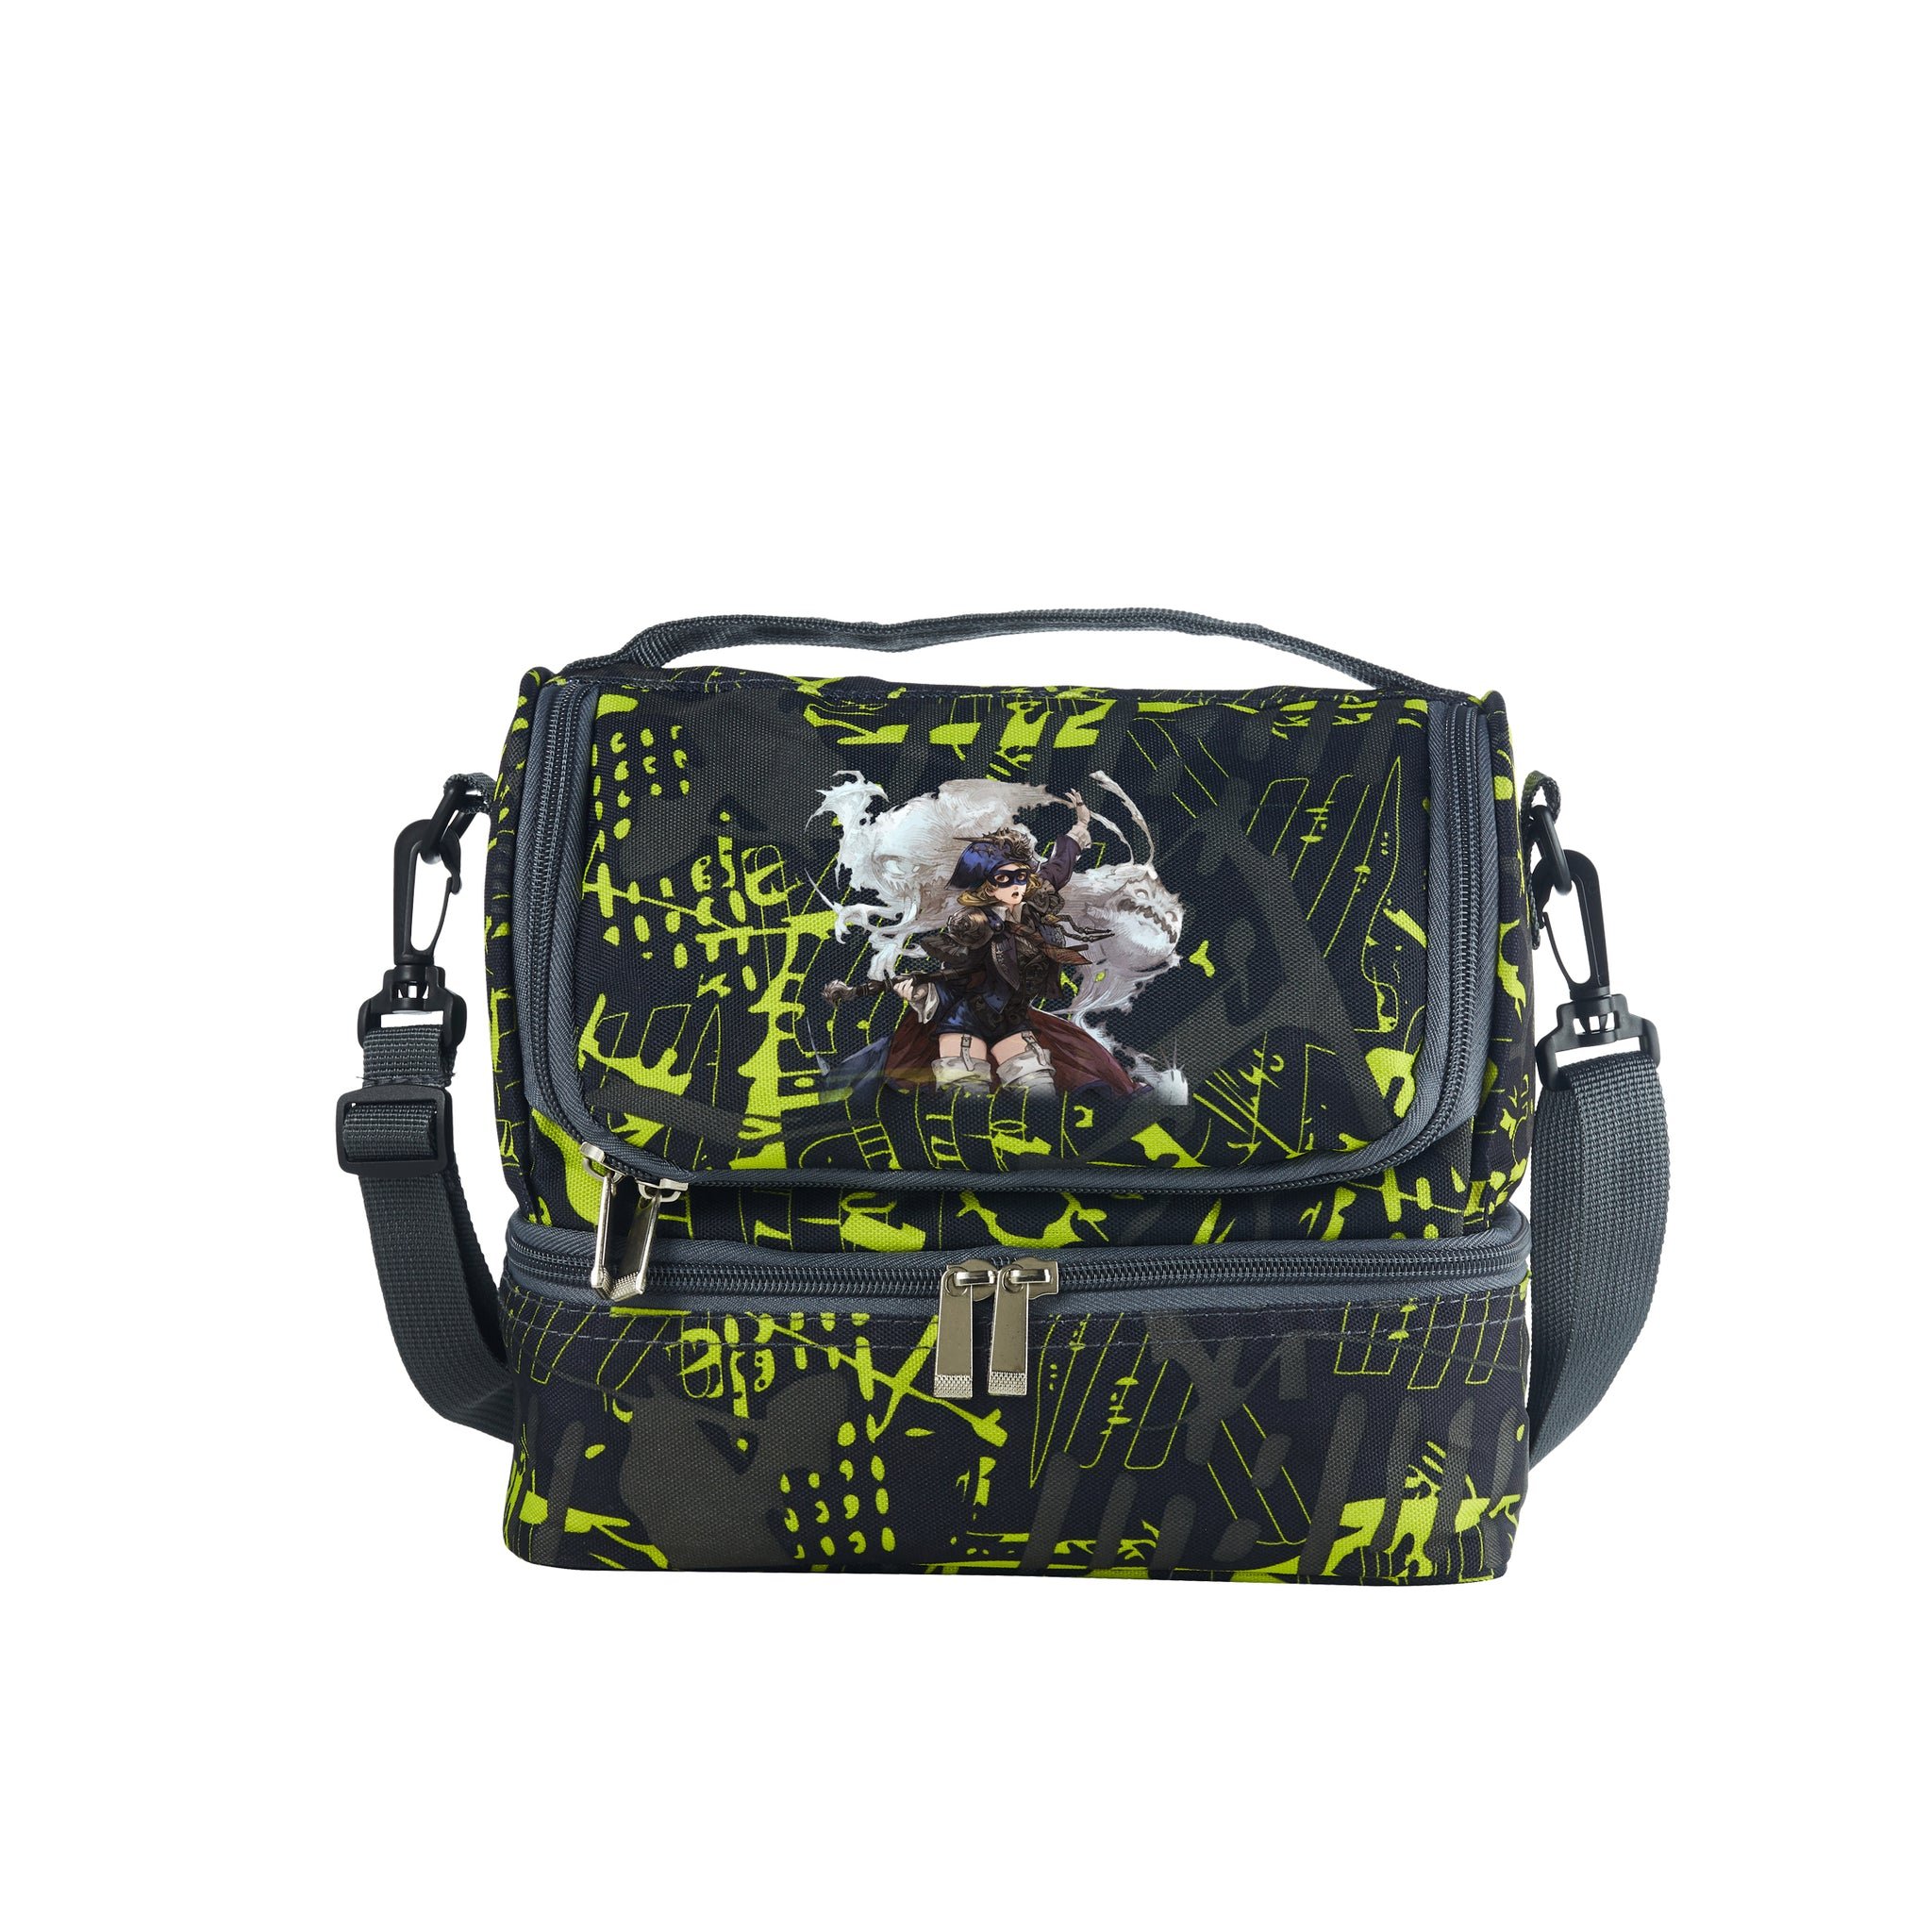 2019 Latest Model Final Fantasy XIV Shadowbringers Logo Kids Two Compartment Green Graffiti Lunch Bag